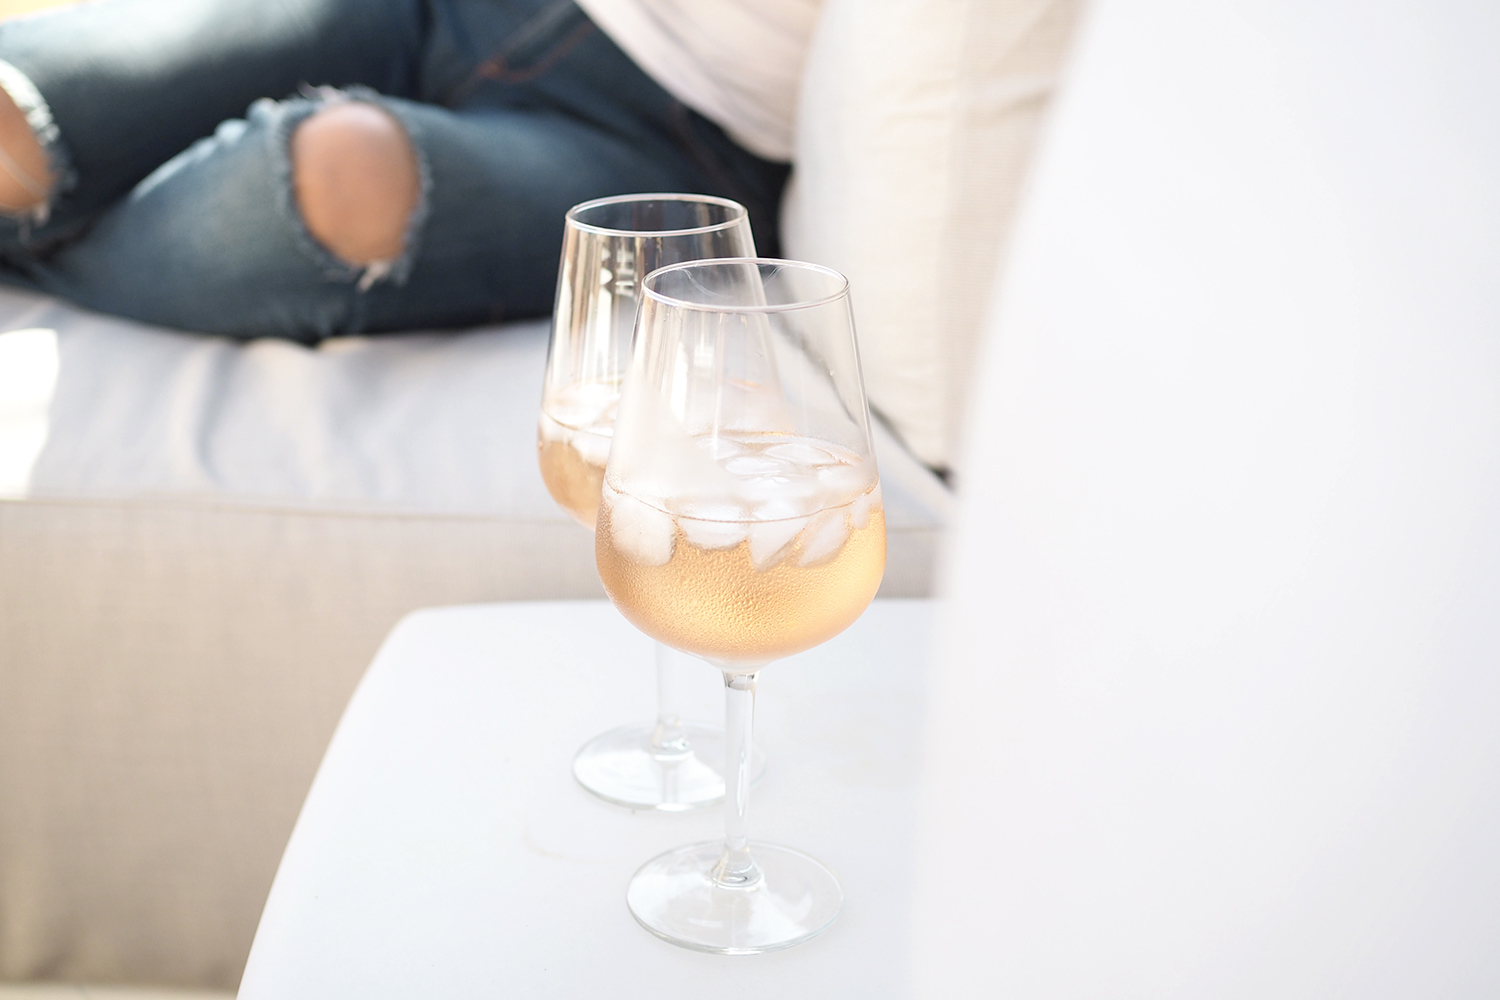 Char and the city - After beach rosé at the terrace lounge in Villefranche-sur-Mer in the French Riviera - read more on the blog